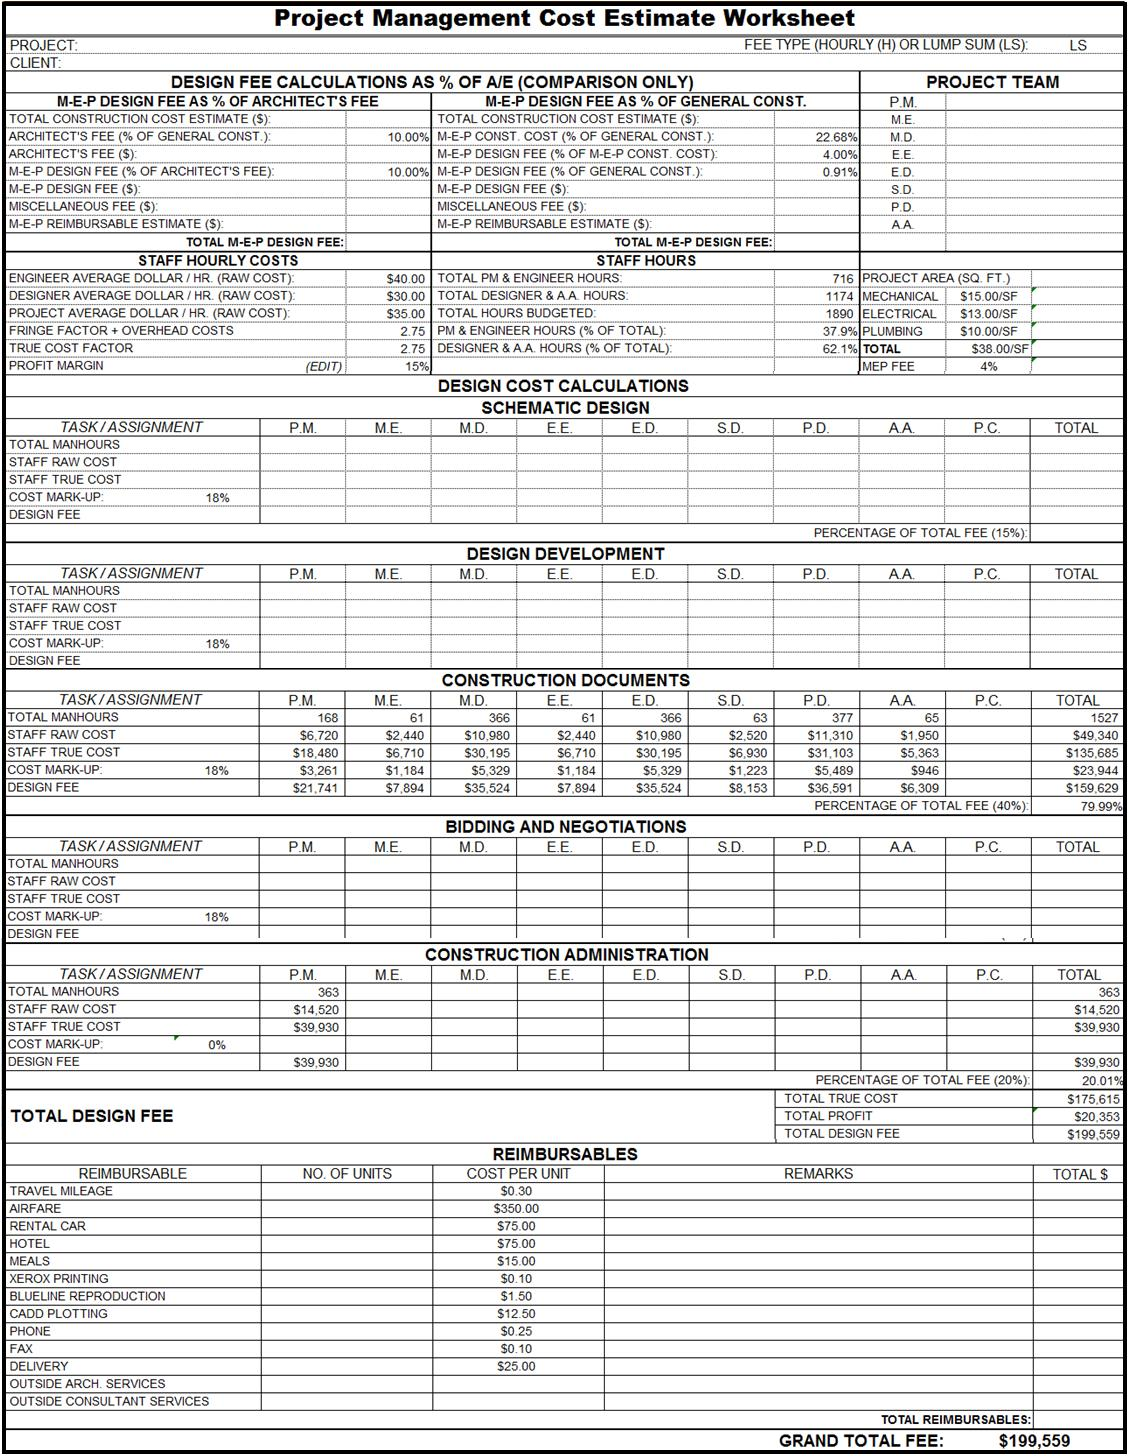 Project Management Cost Estimate Worksheet